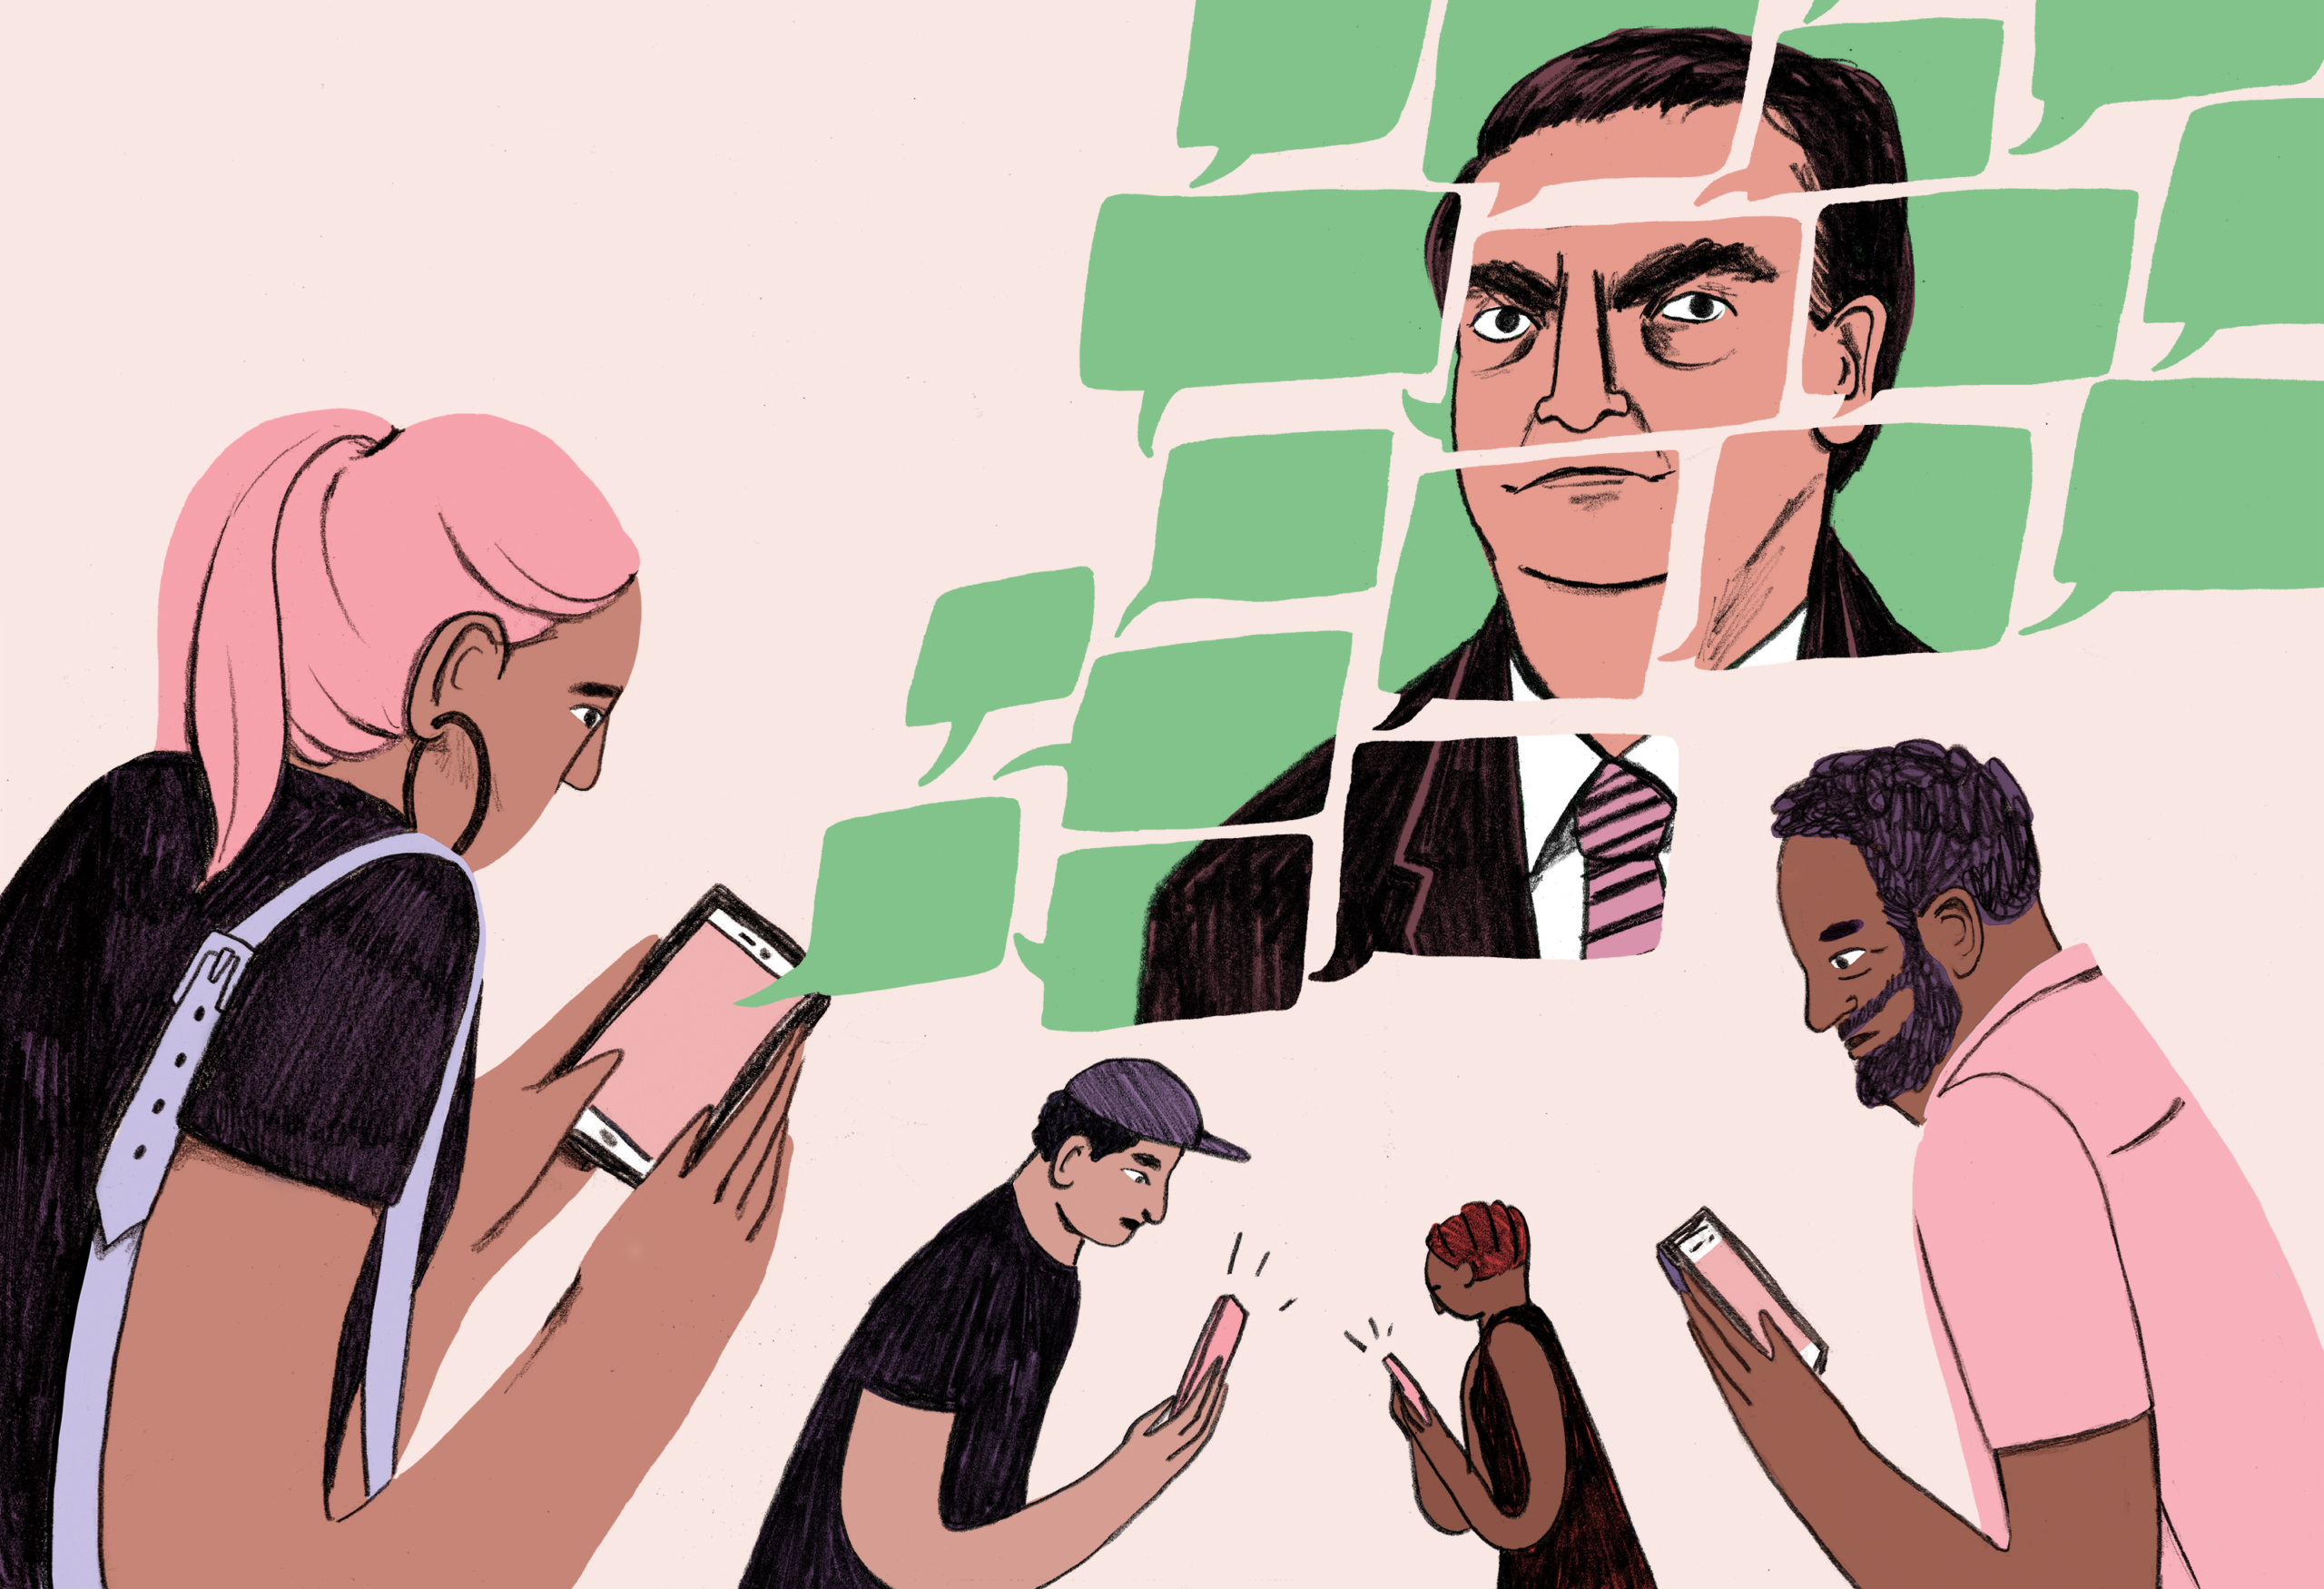 Illustration of people looking at their phones.